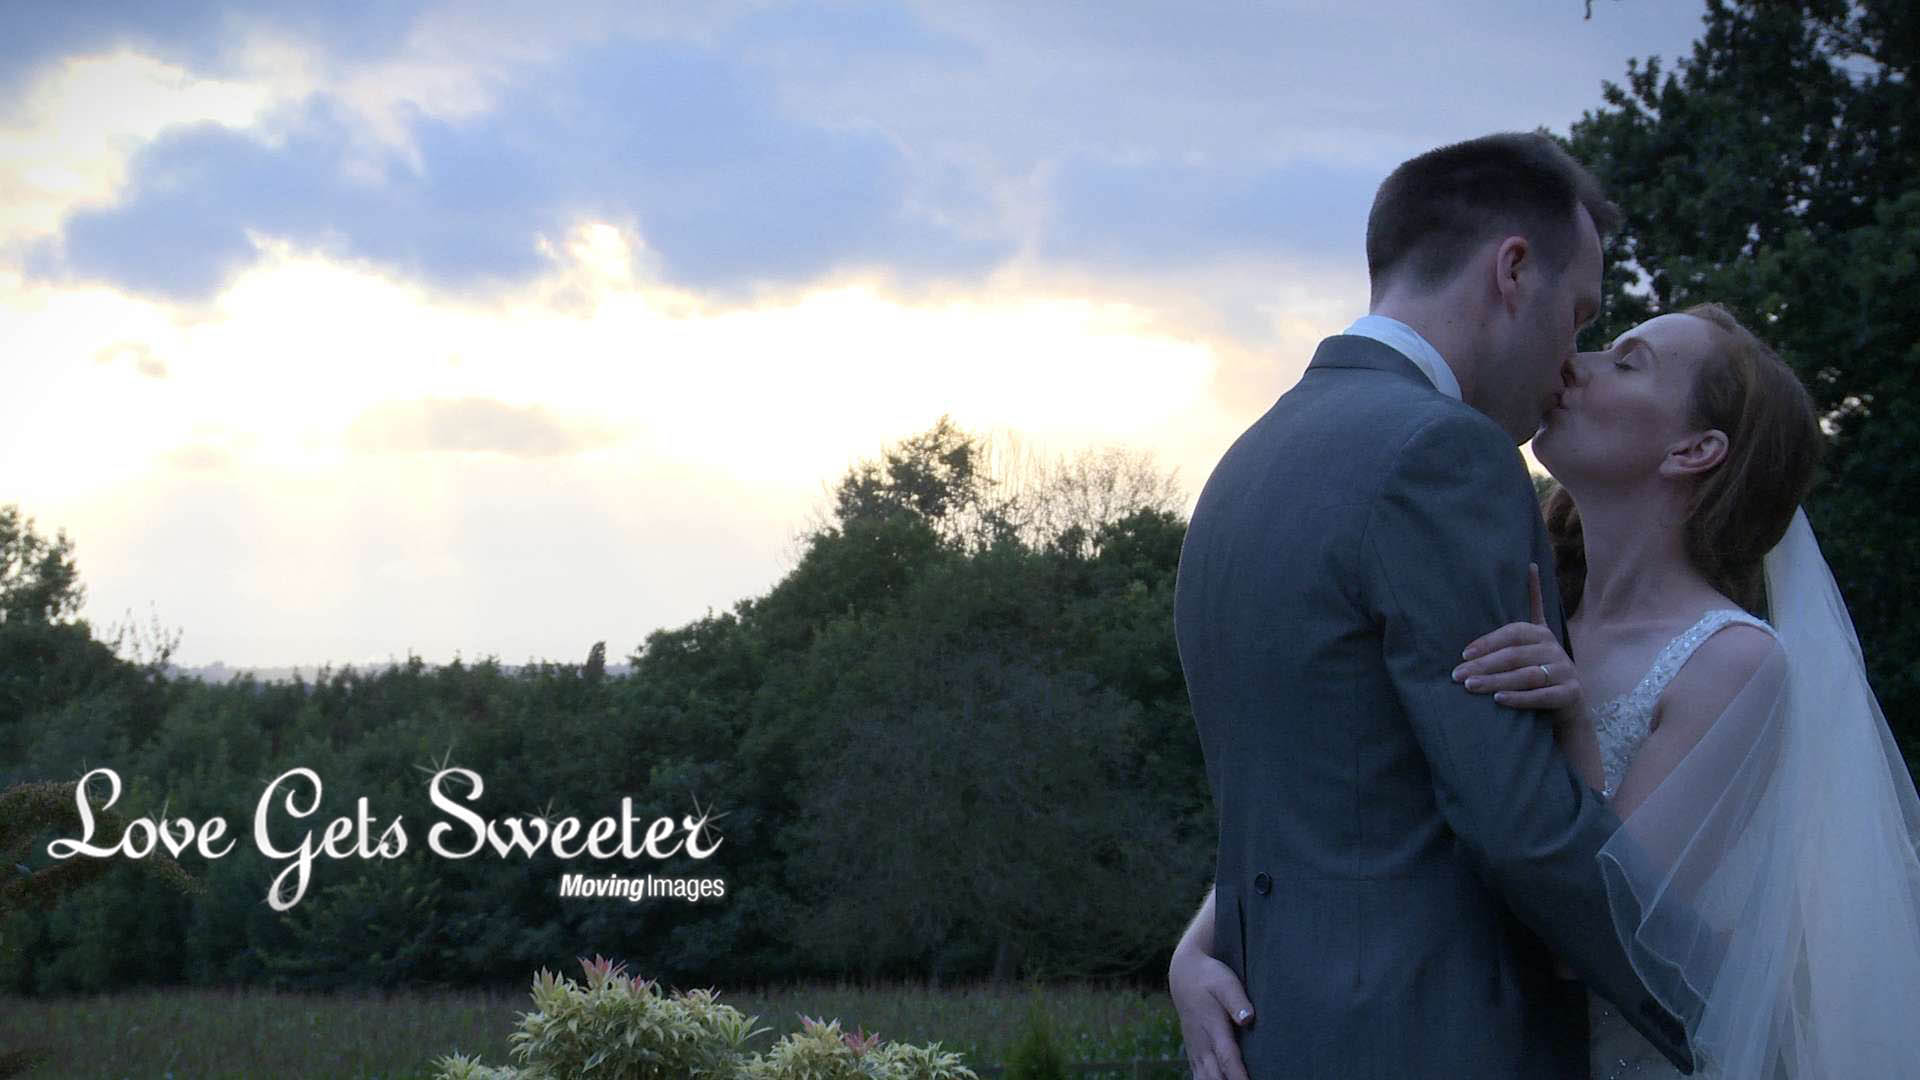 romantic bride and groom shot staged for wedding video during sunset at summer wedding